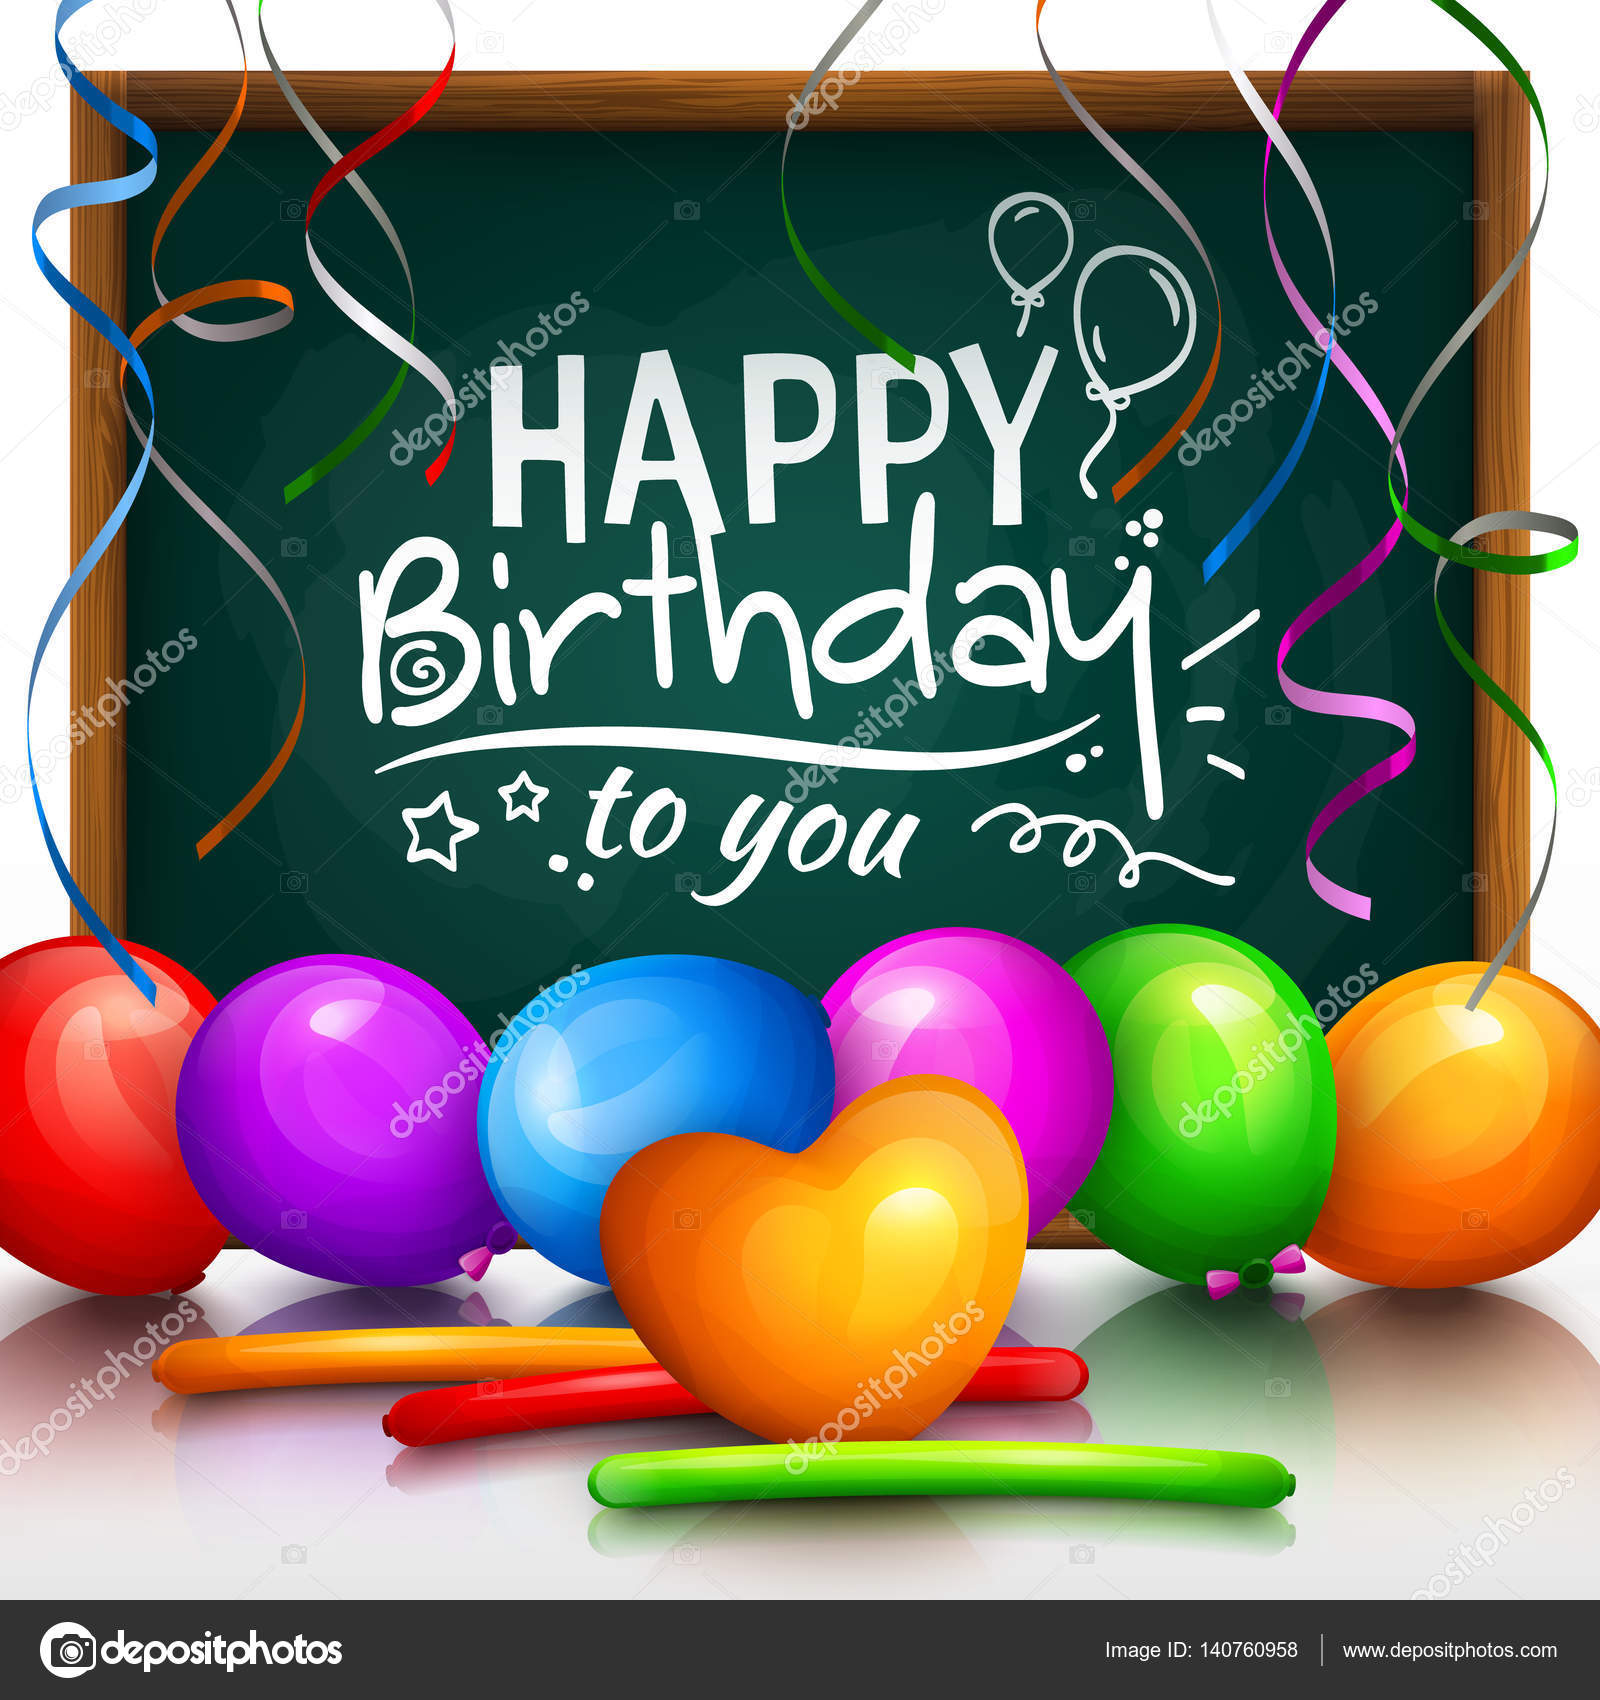 Happy Birthday Greeting Card Party Multicolored Balloons Colorful Streamers And Stylish Lettering On Chalkboard